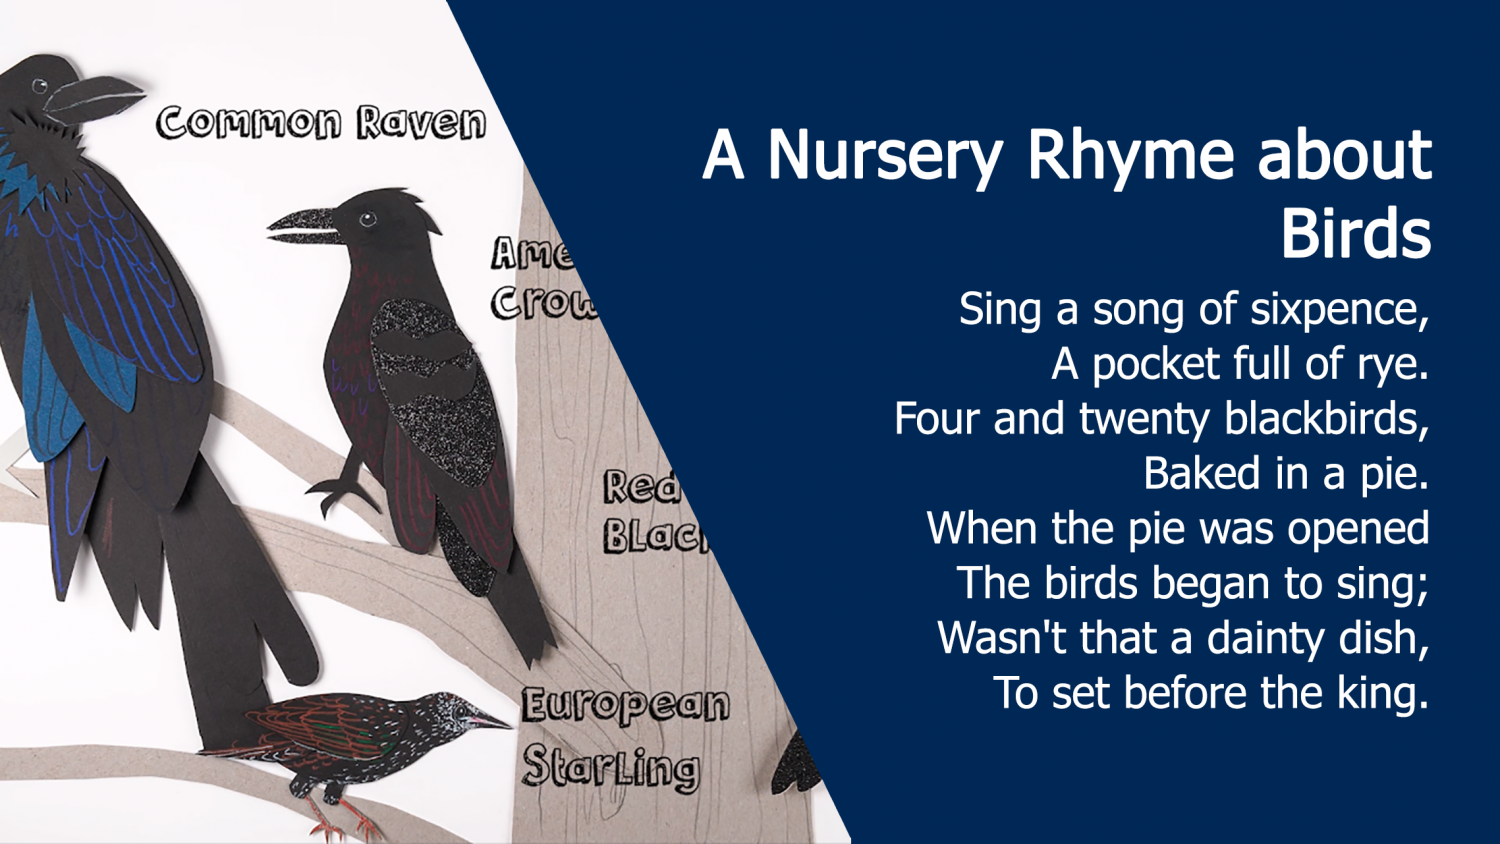 A Nursery Rhyme about Birds: Sing a song of sixpence, A pocket full of rye. Four and twenty blackbirds, Baked in a pie. When the pie was opened The birds began to sing; Wasn't that a dainty dish, To set before the king.